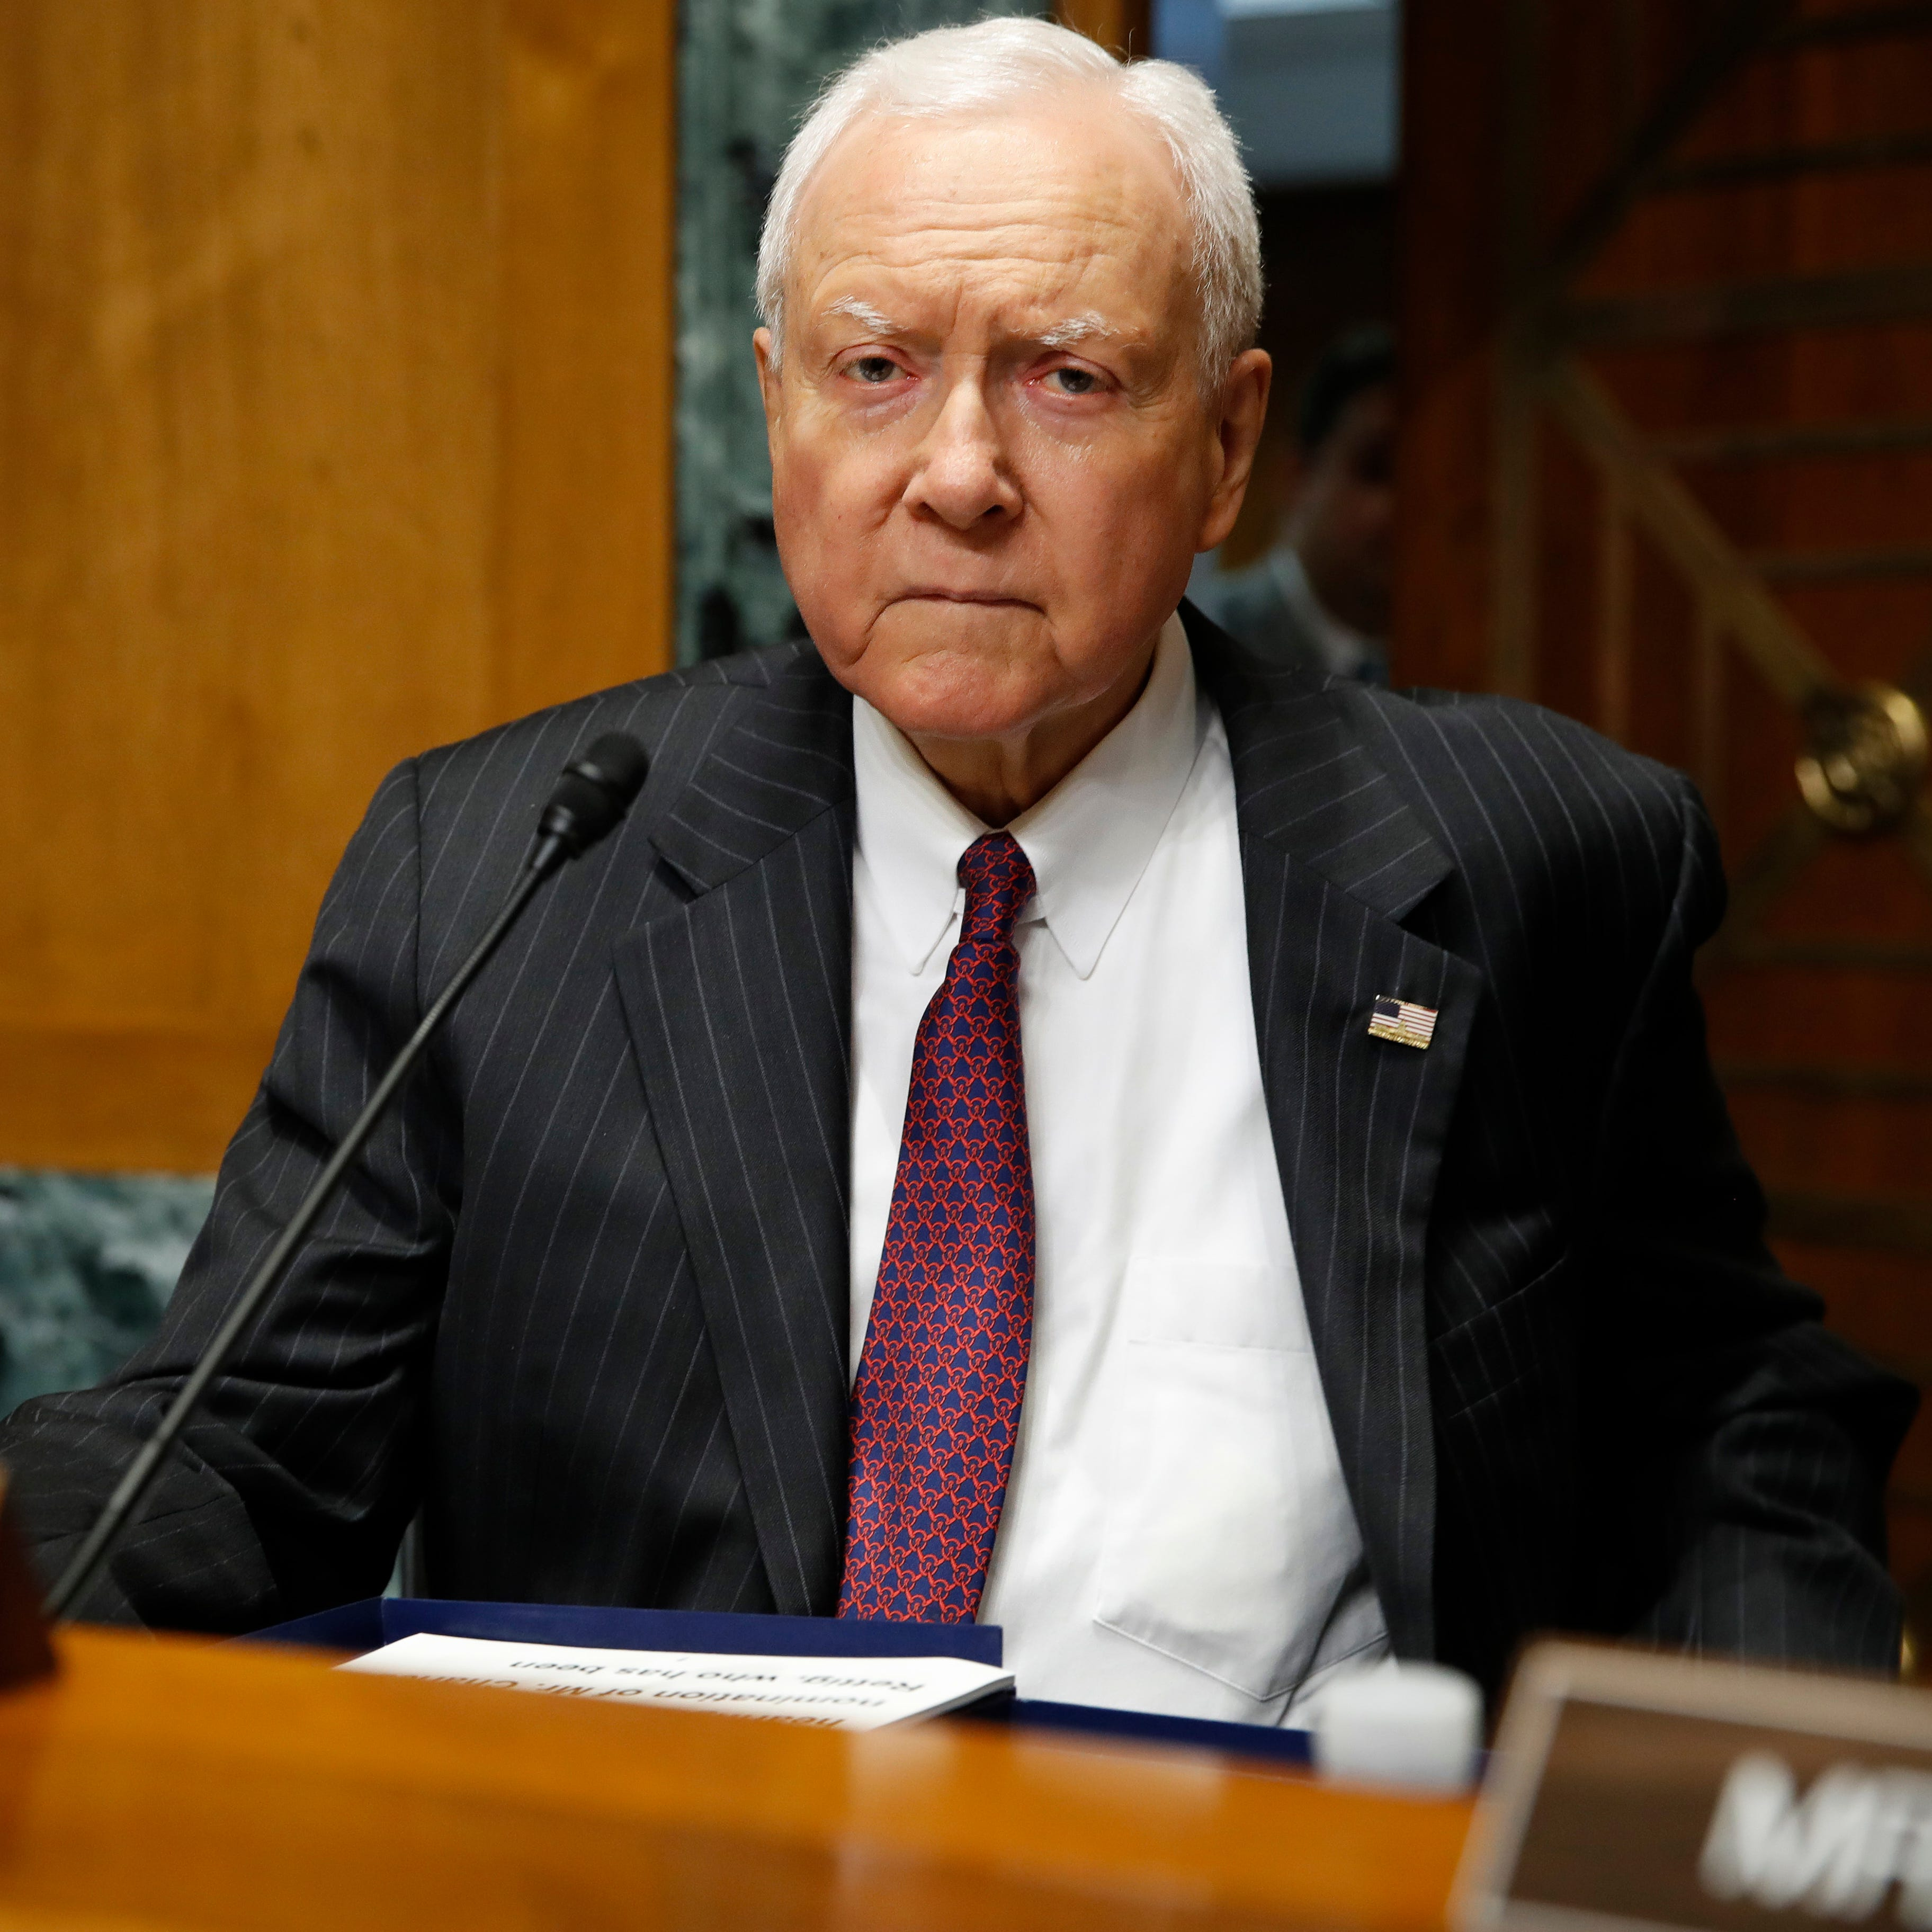 Utah's Orrin Hatch laments loss of civility for U.S. Senate in 'crisis'